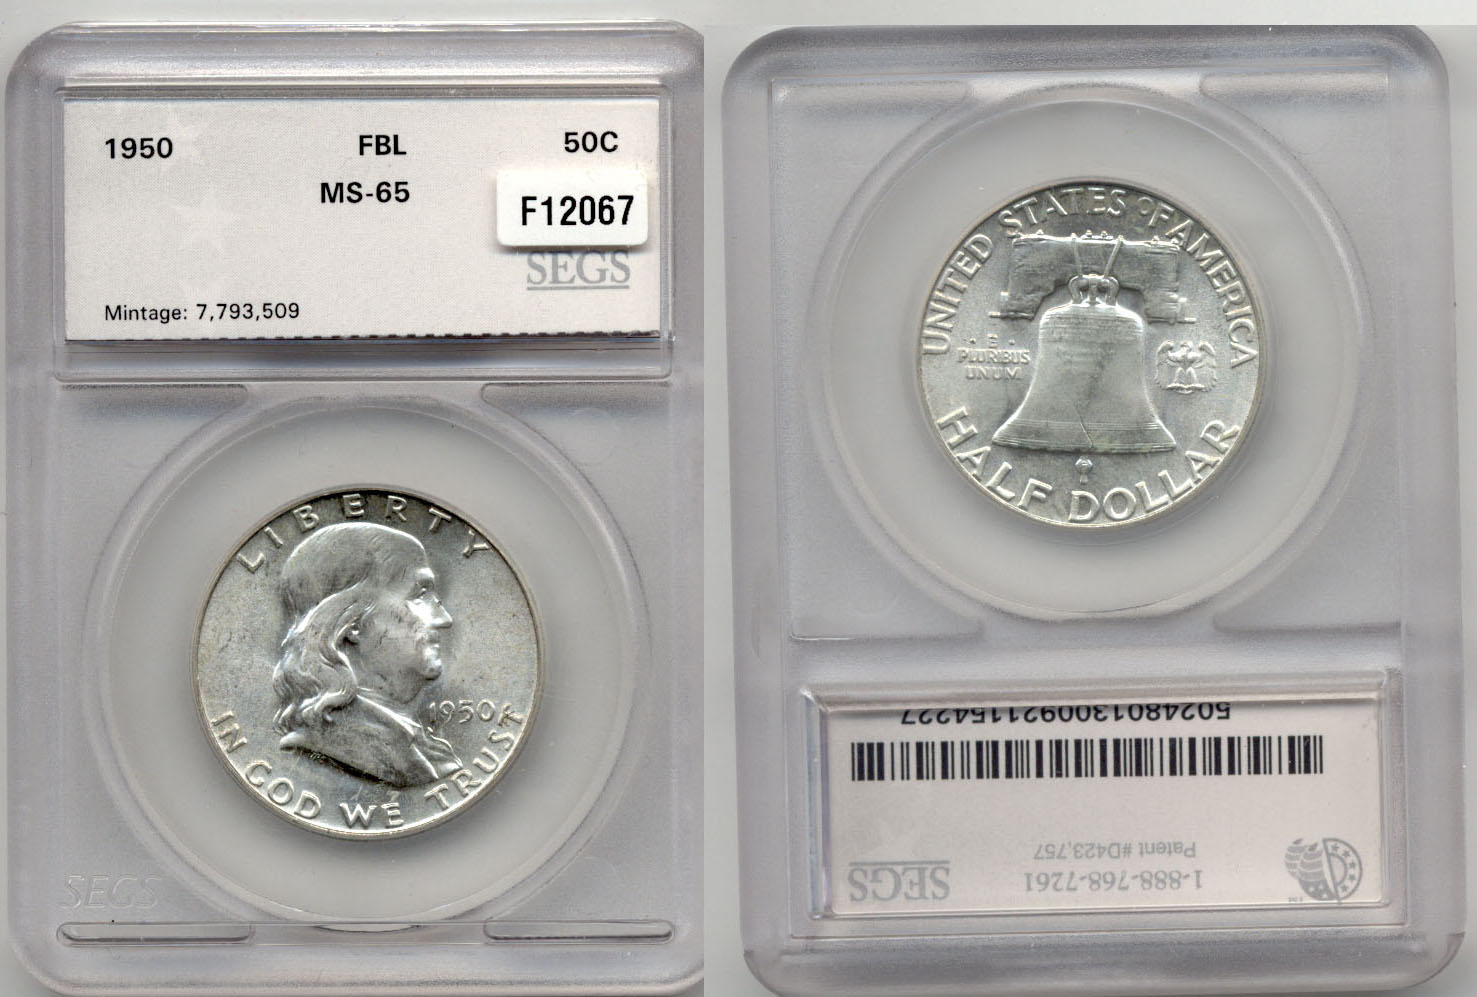 1950 Franklin Half Dollar SEGS MS-65 FBL